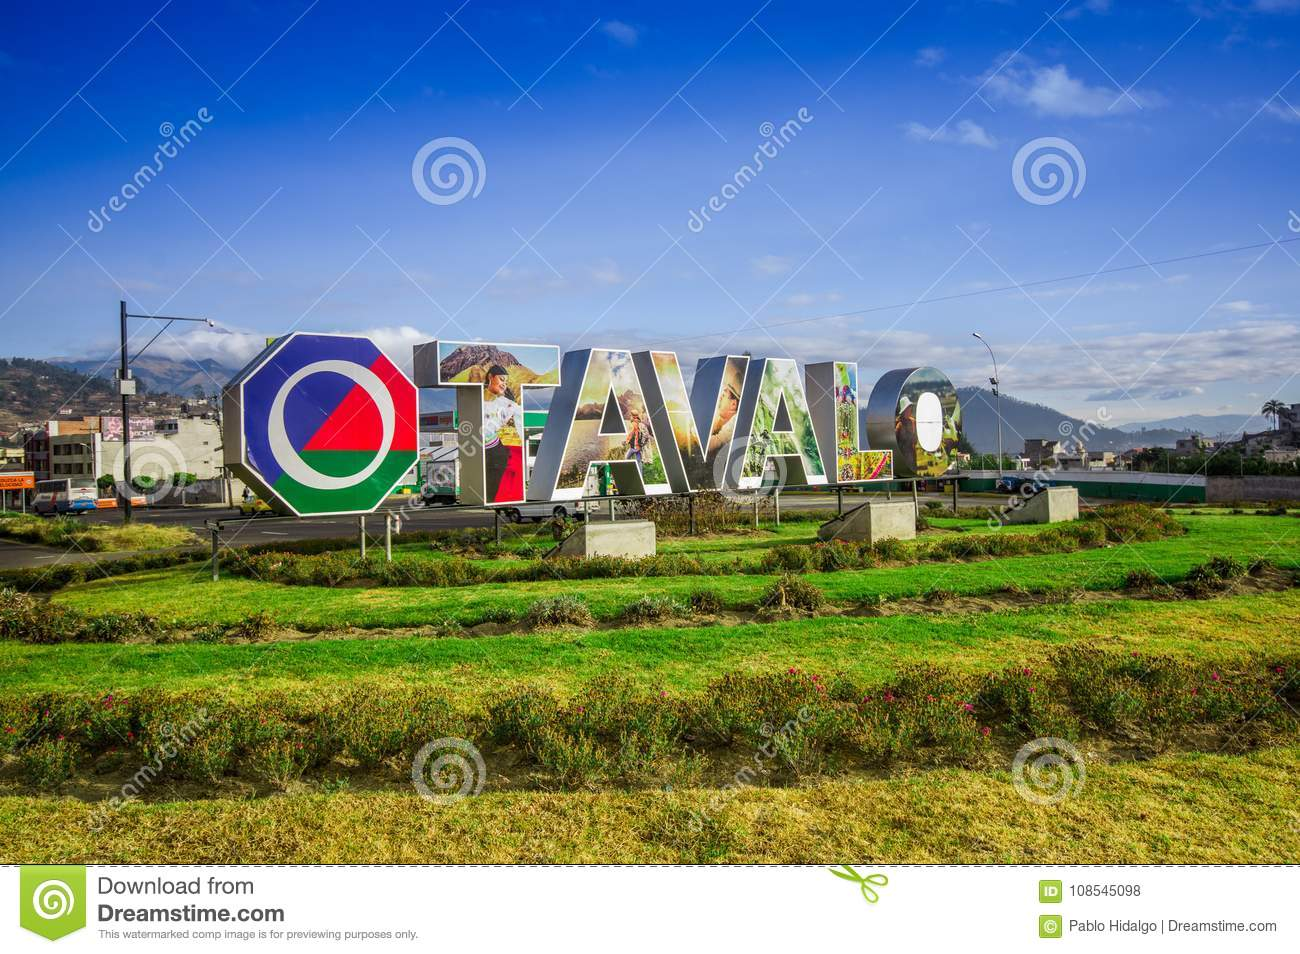 otavalo ecuador september 03 2017 view of signboard with huge